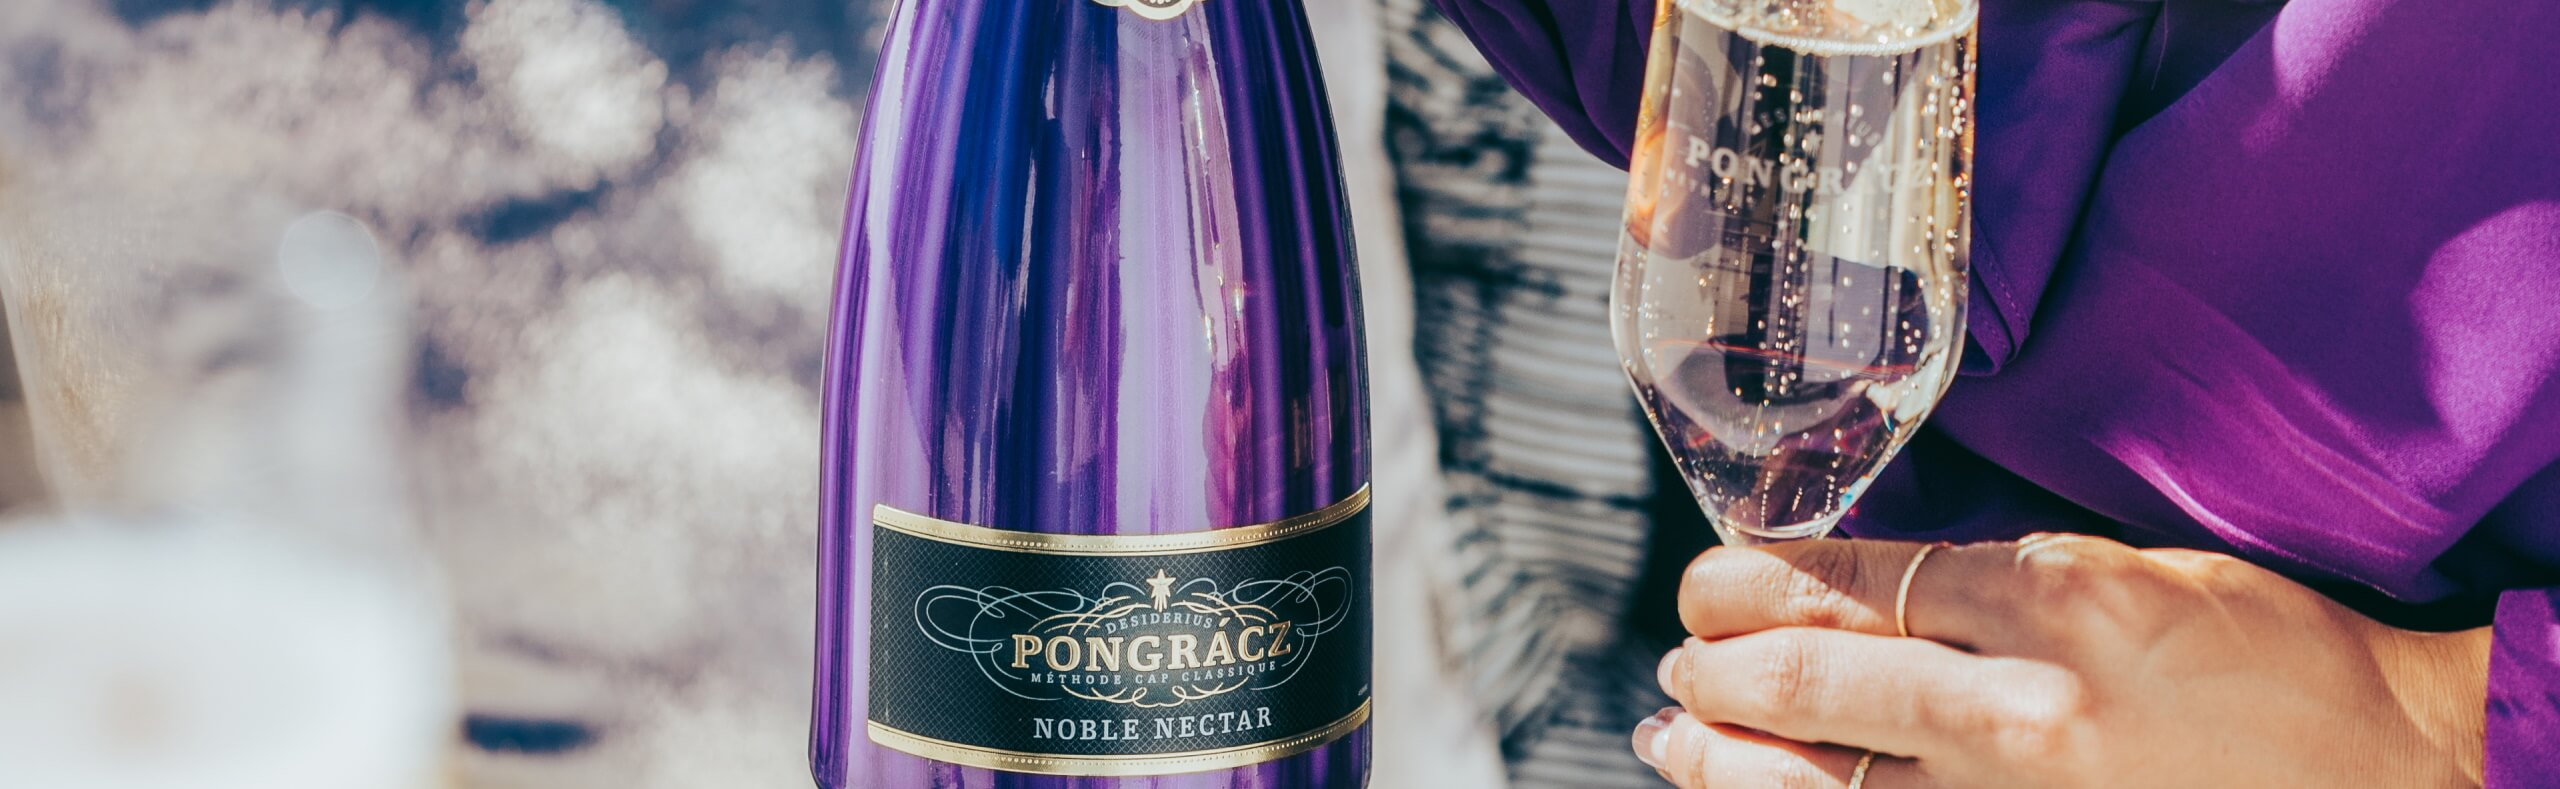 Pongracz Noble Nectar bottle with flute glass filled with MCC